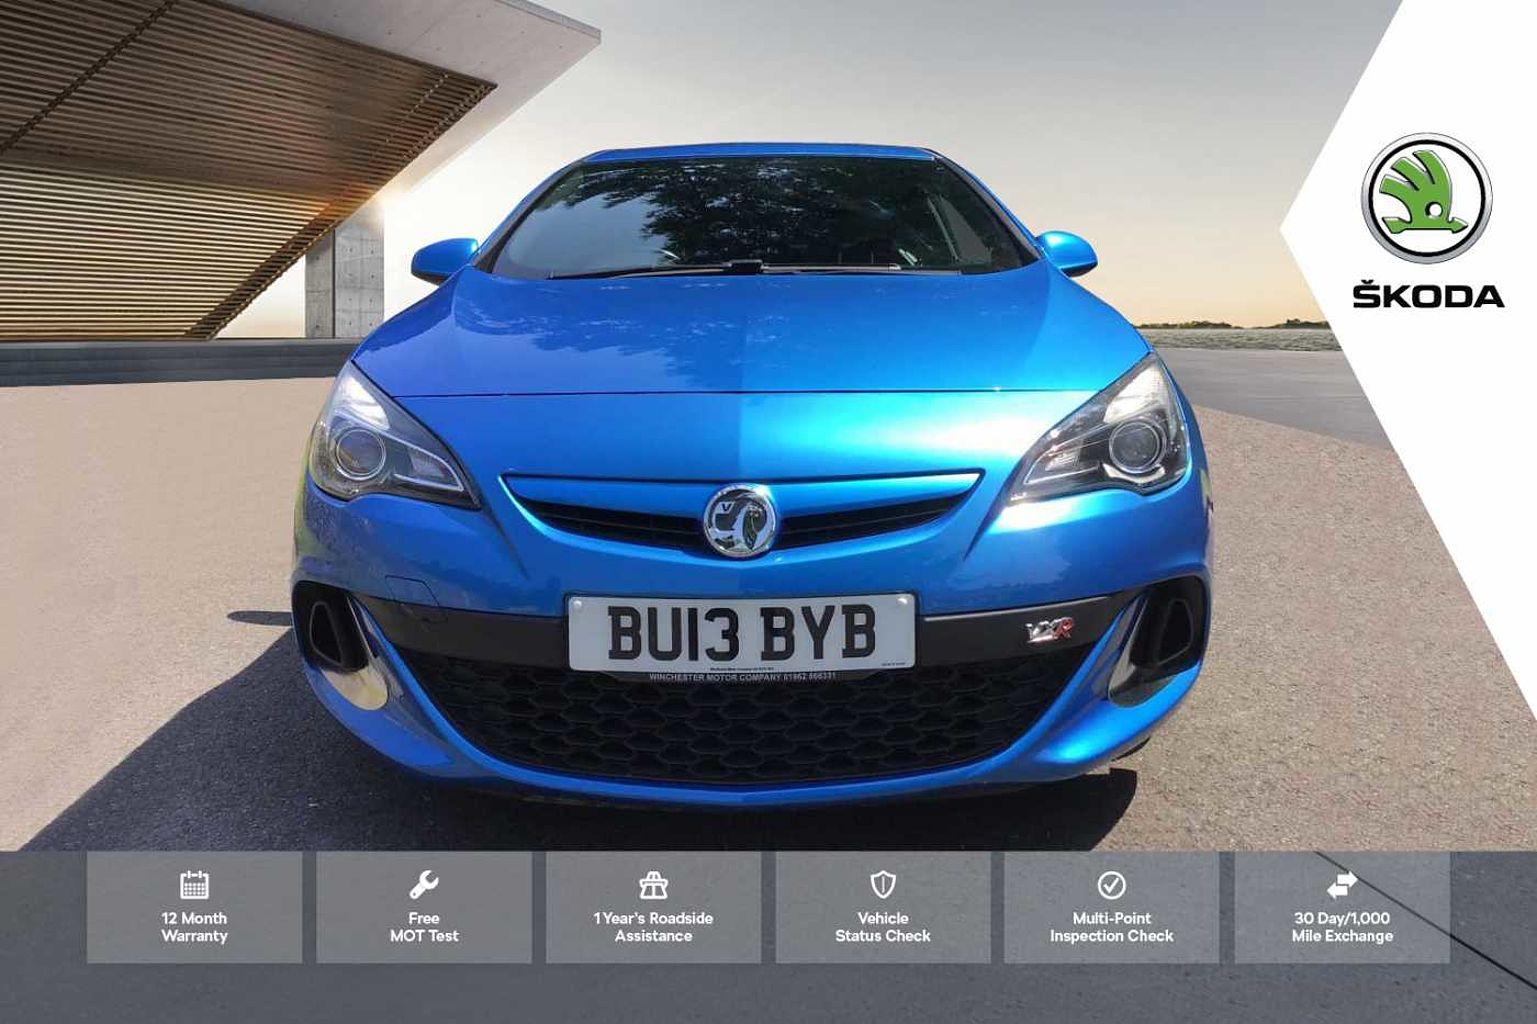 Vauxhall Astra GTC 2.0 Turbo (280 PS) VXR Coupe